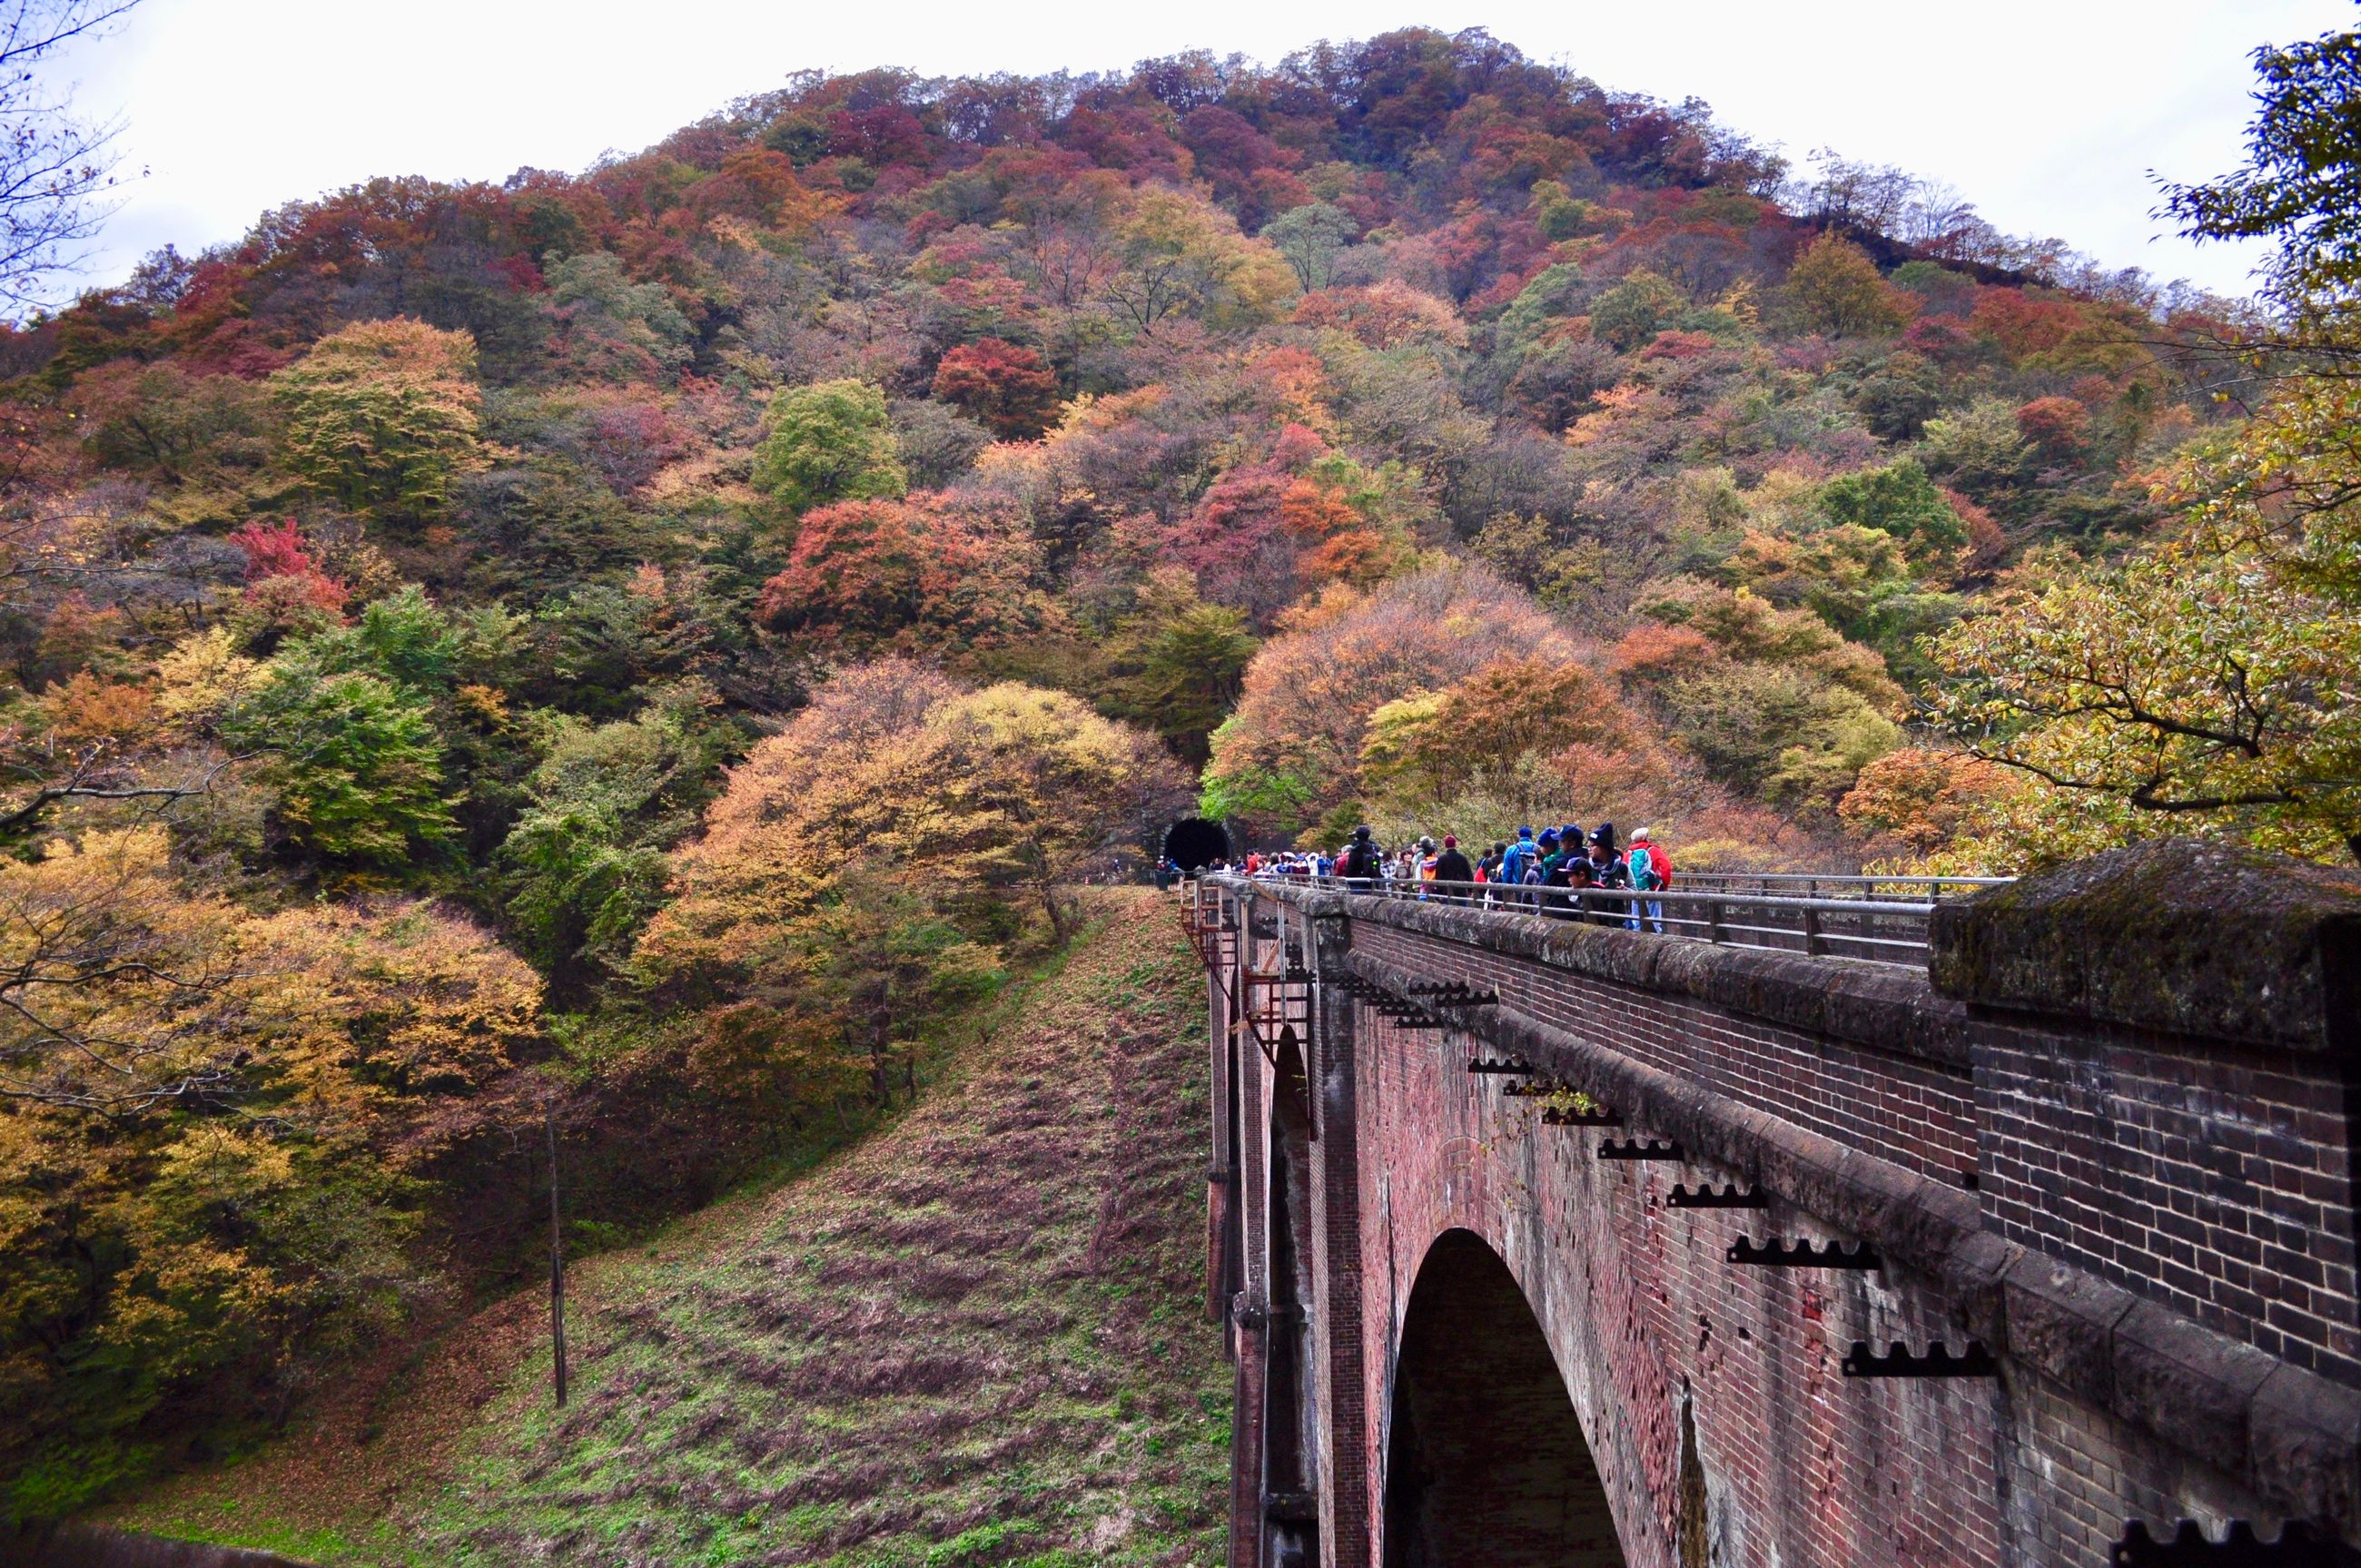 bridge - man made structure, connection, day, architecture, tree, outdoors, nature, built structure, mountain, transportation, real people, arch, scenics, beauty in nature, footbridge, sky